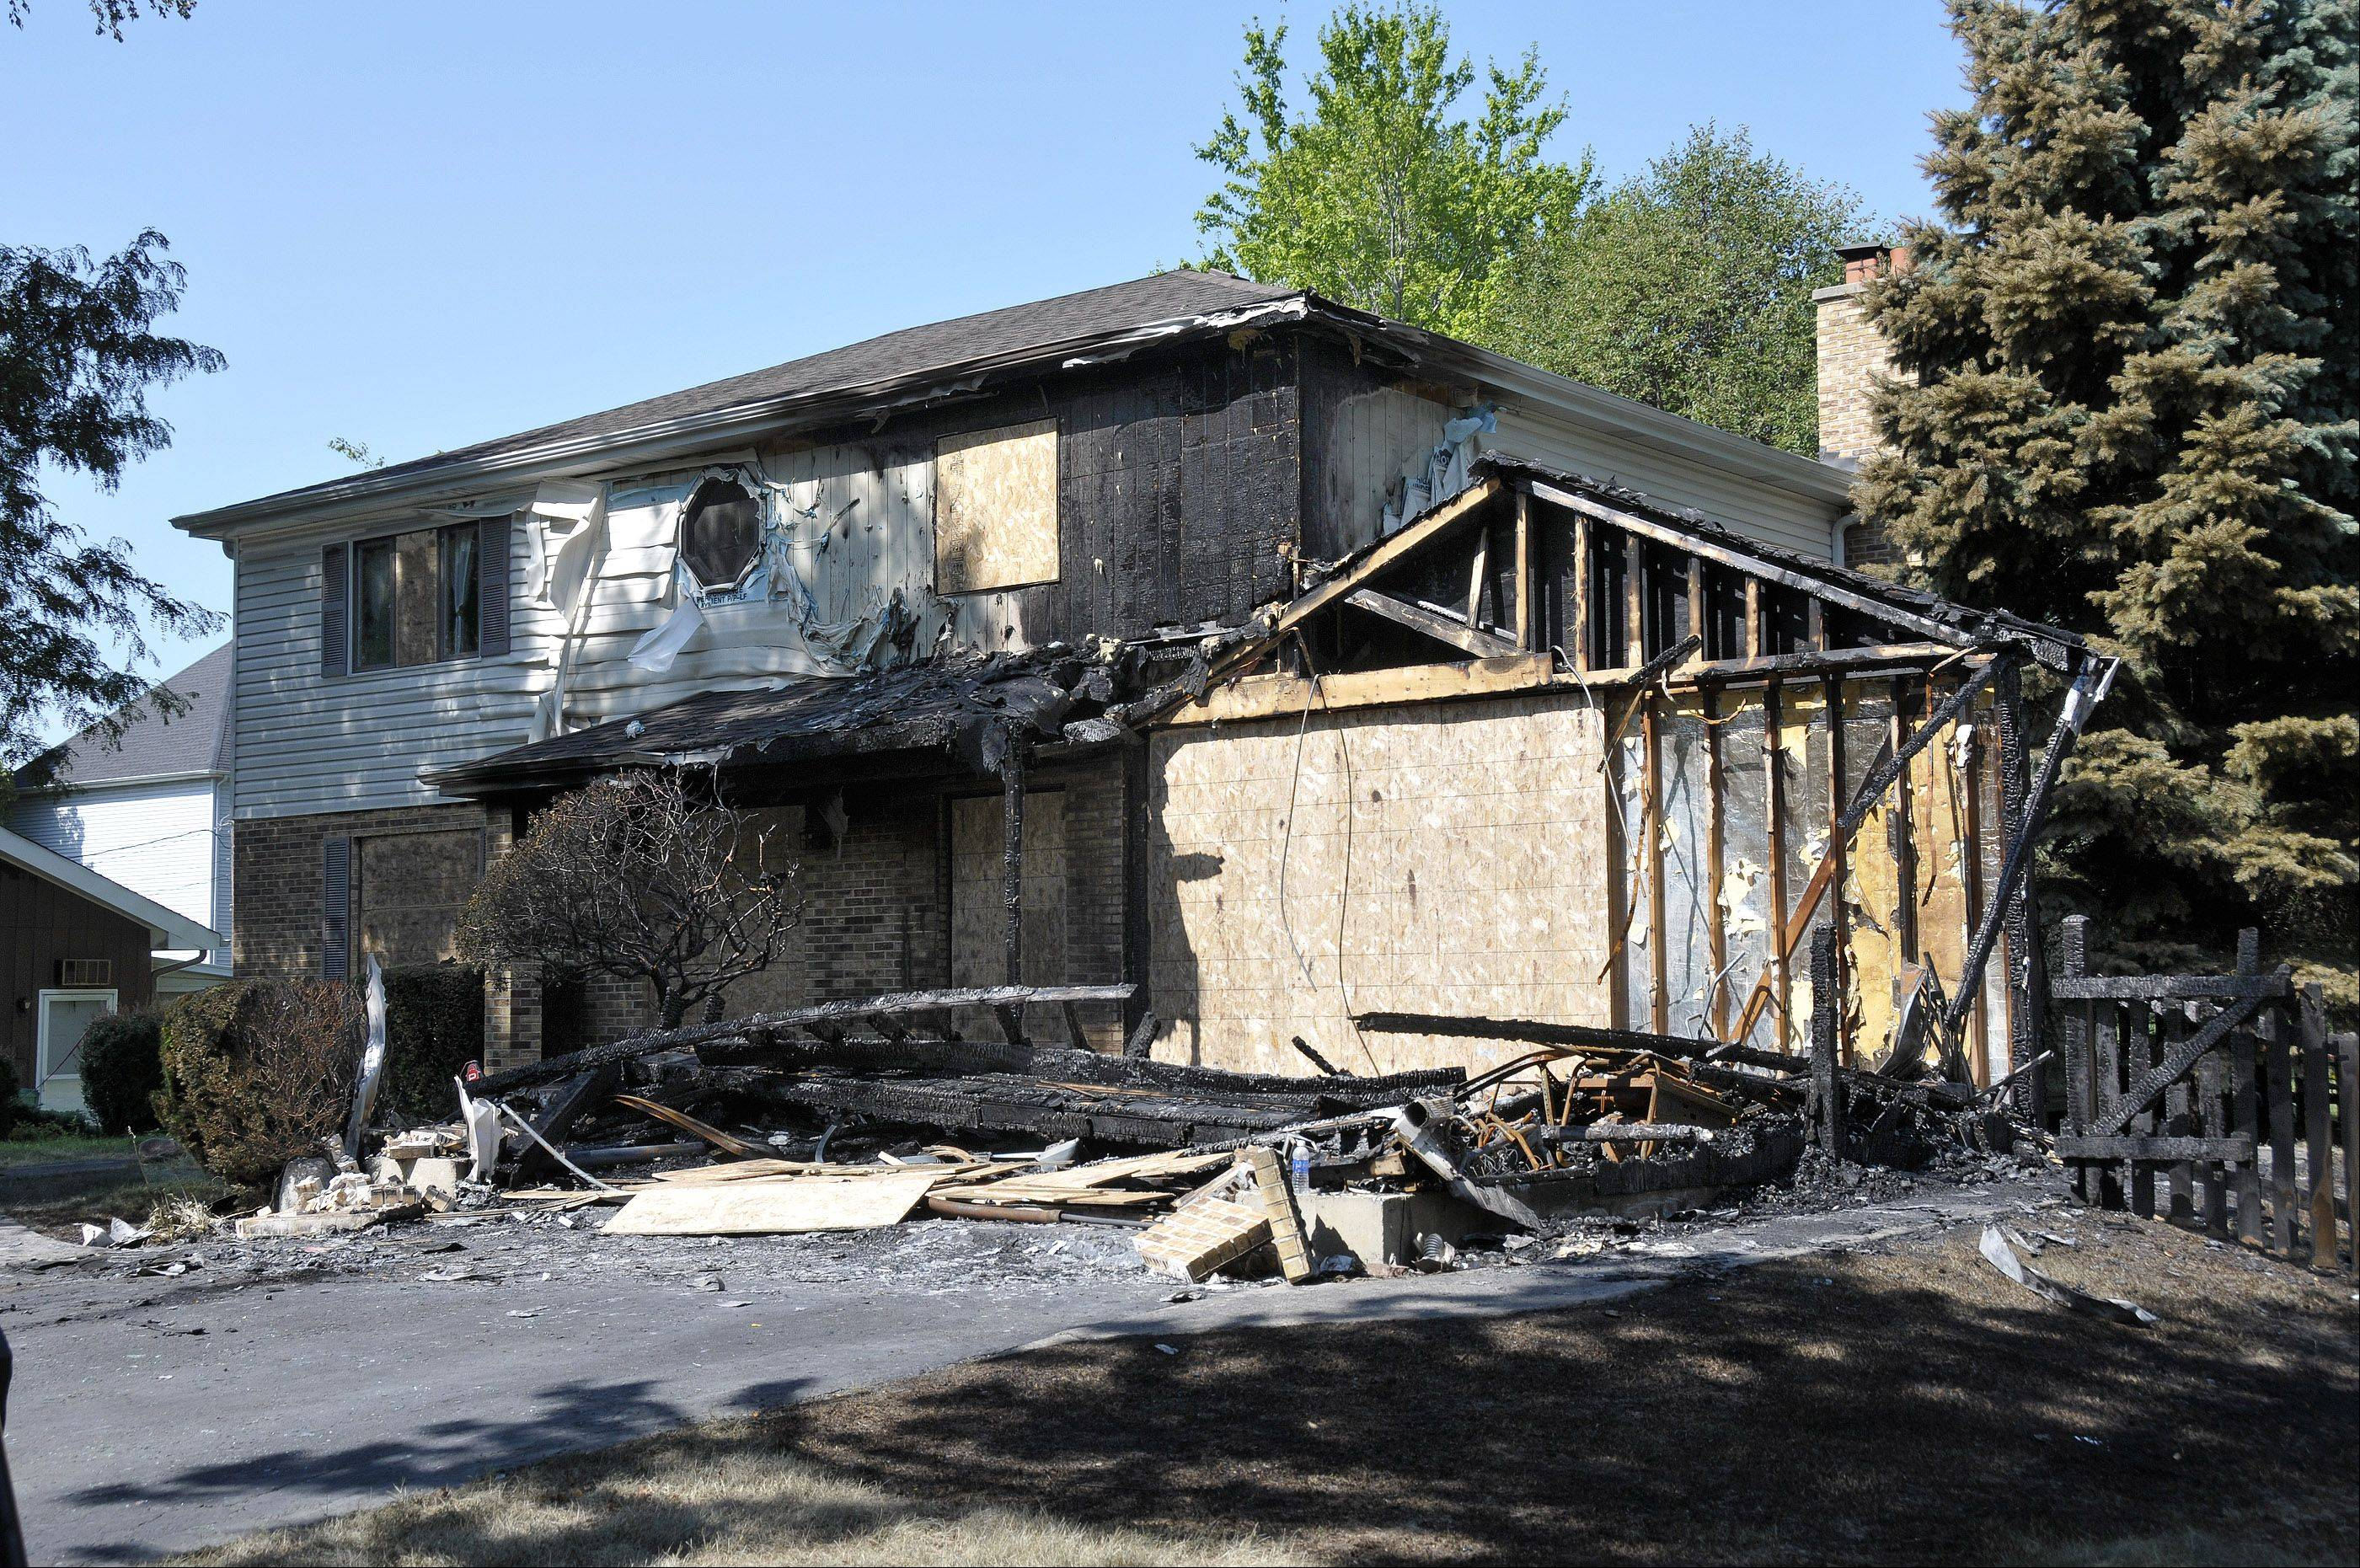 Paula Morgan, 24, of Lombard was killed when fire swept through her home. Her former boyfriend, Todd Mandoline of Villa Park, has been charged with arson and murder.